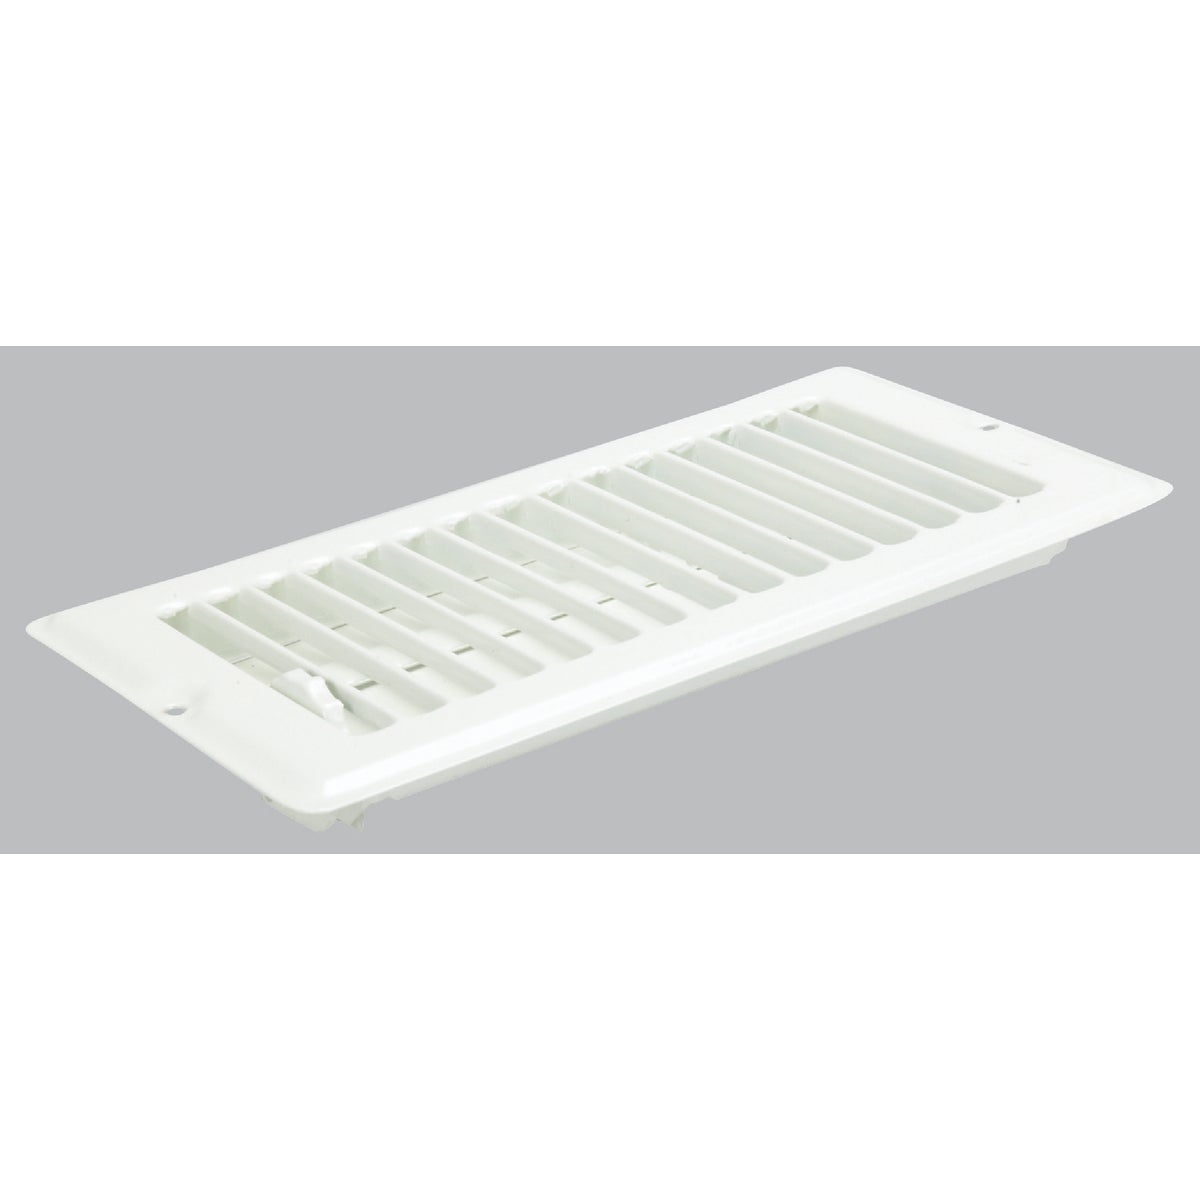 4X8 WHT FLOOR REGISTER - V-102WB by U S Hardware